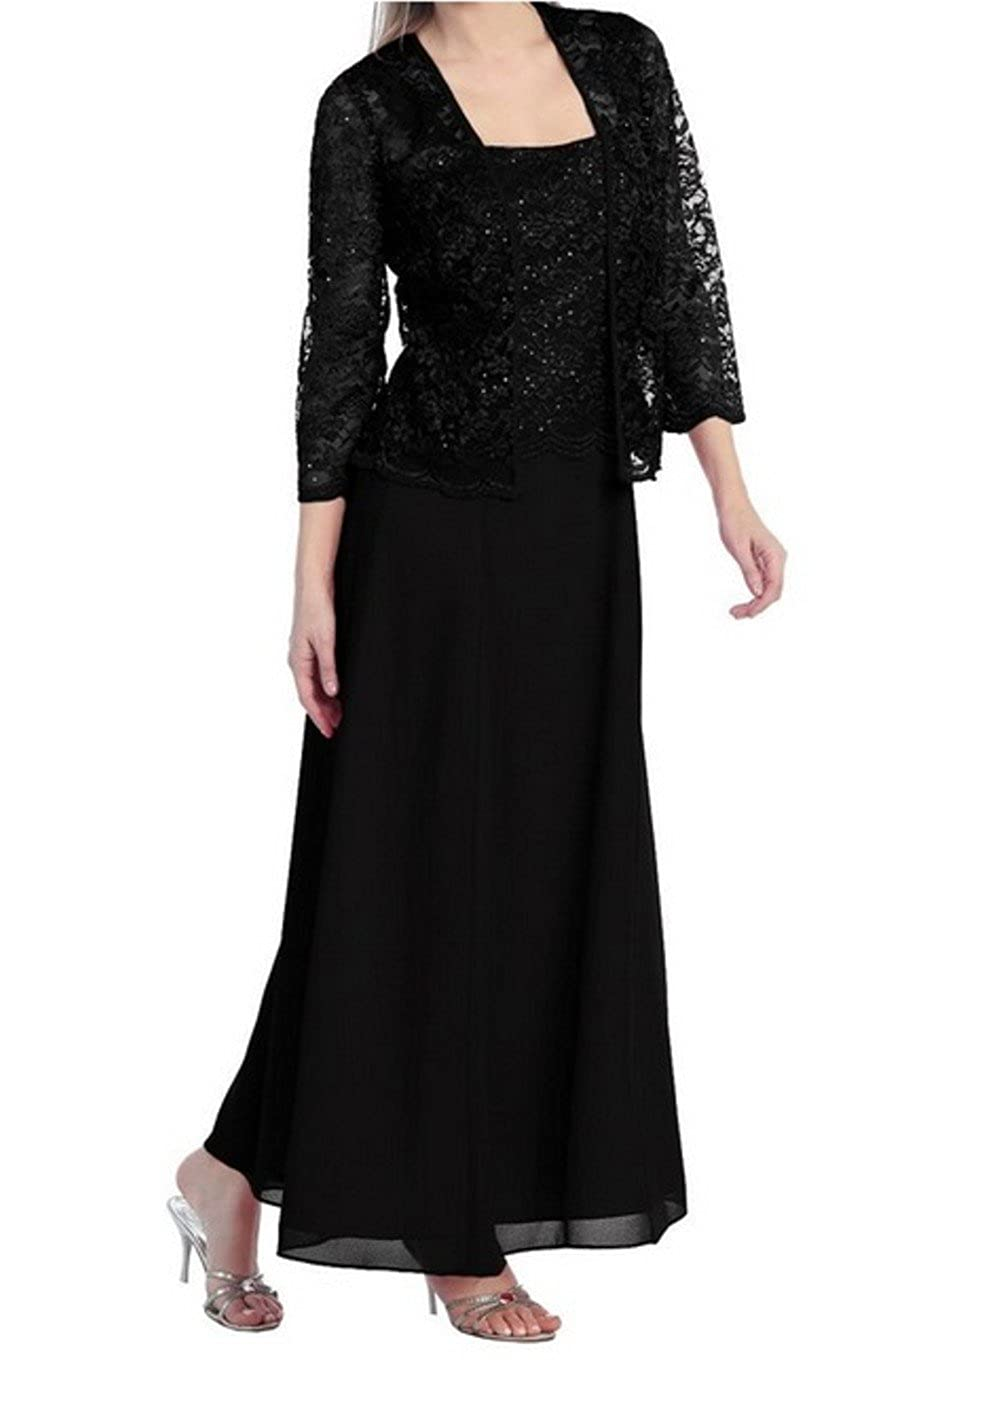 f3e17a09c2b8c Womens Long Mother of The Bride Evening Formal Lace Dress with Jacket at  Amazon Women's Clothing store: